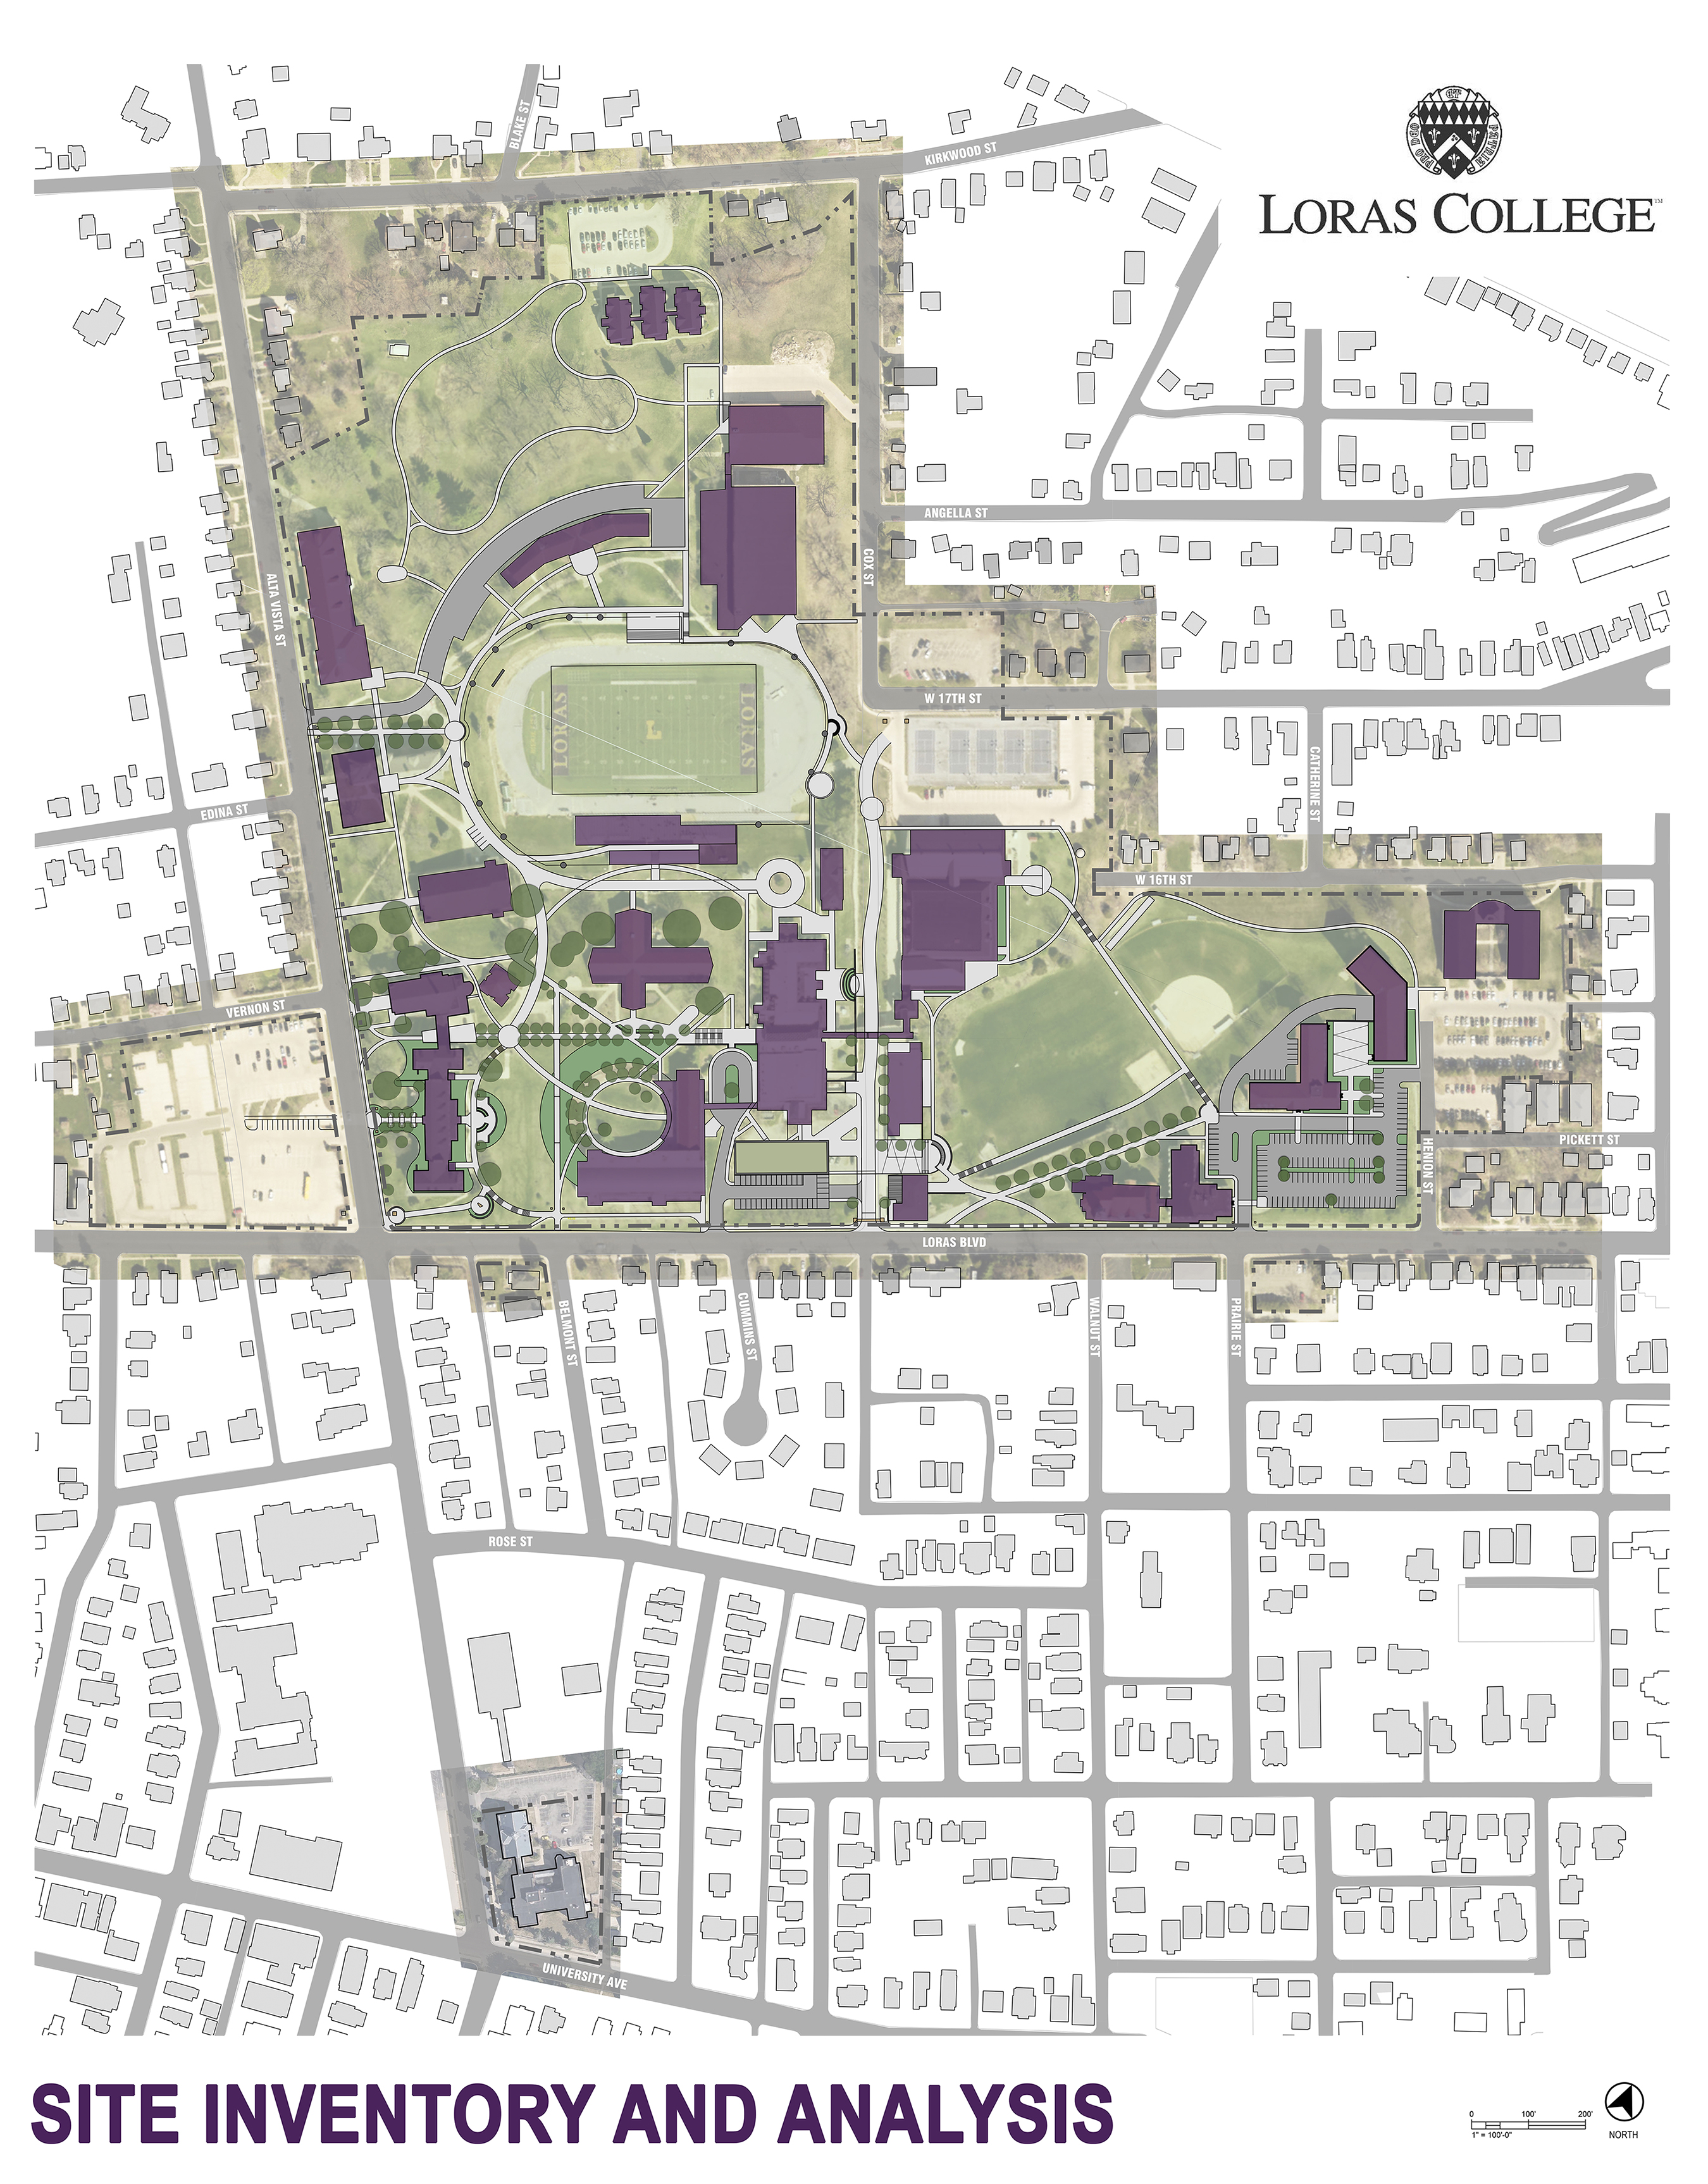 Saiki Design led a rigorous process of inventory and analysis, facilitating focus groups with students, faculty, staff and the steering committee. The result was a well-rounded master plan that included immediate priorities and future-focused solutions.